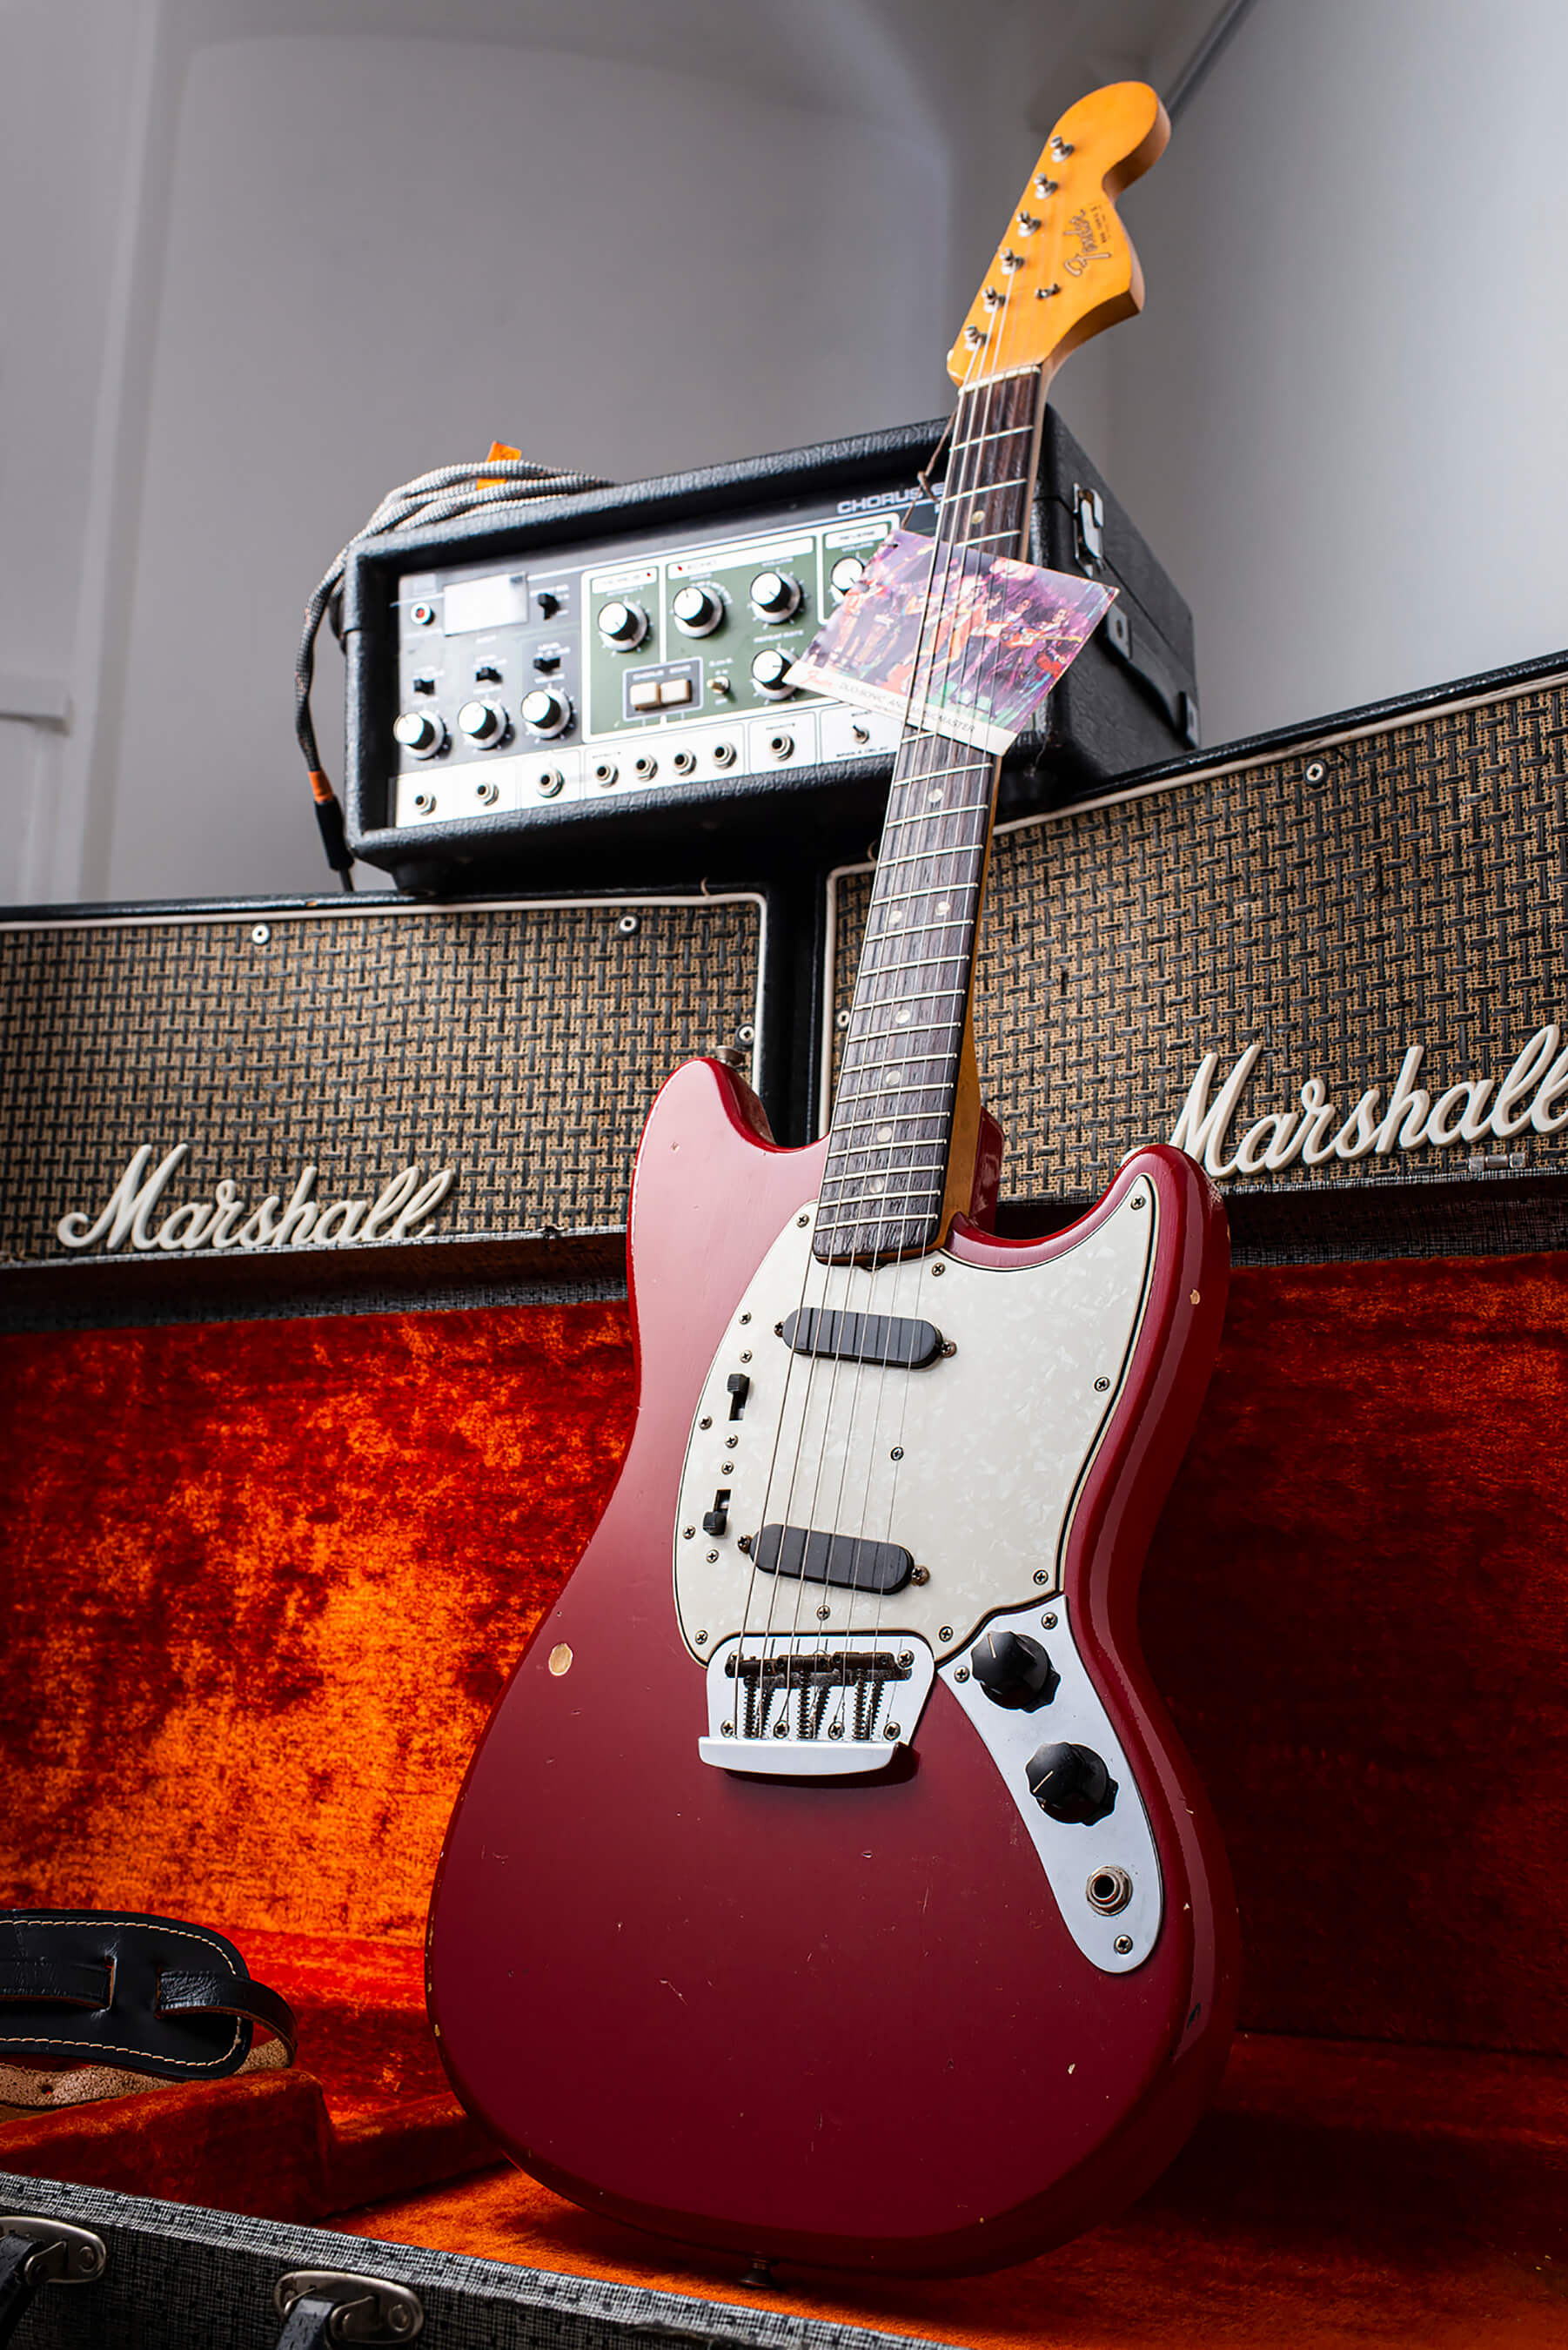 Giles Palmer's 1960s Fender Duo Sonic